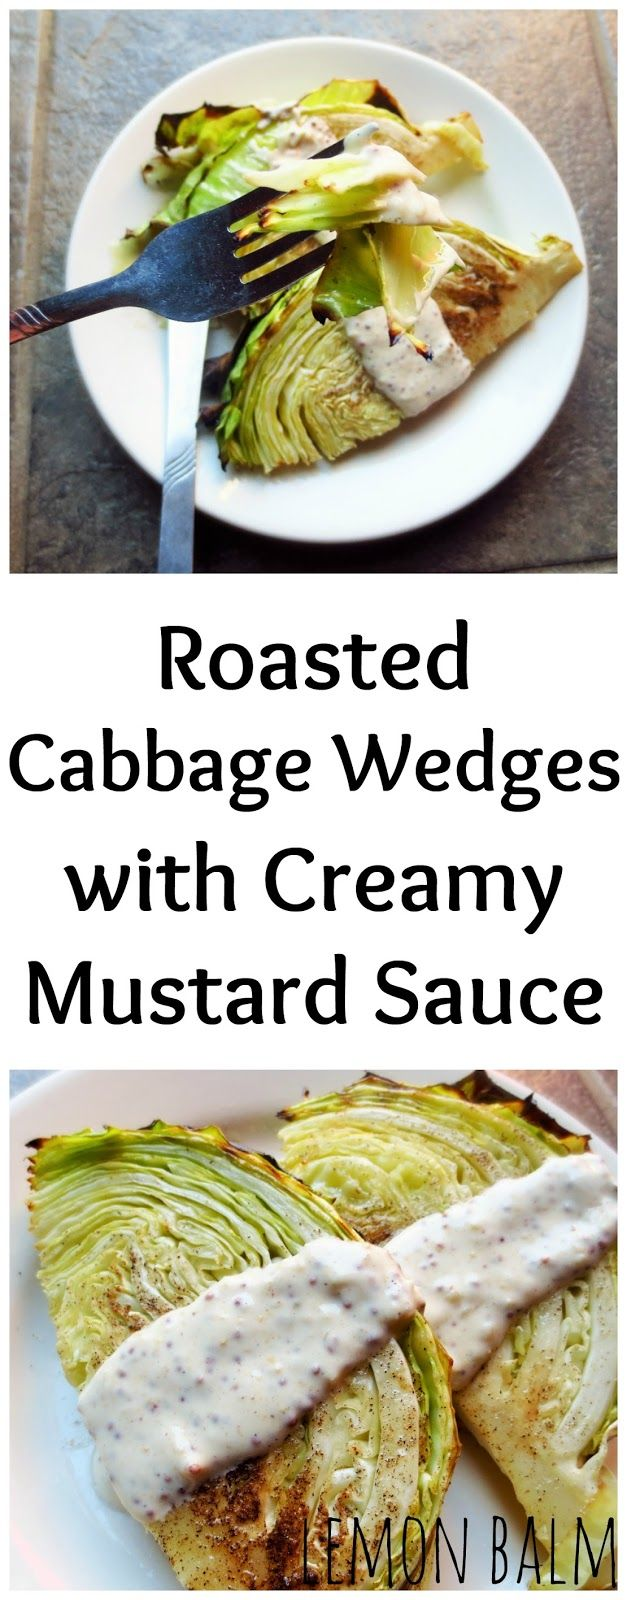 Roasted Cabbage Wedges with Creamy Mustard Sauce#glutenfree http://macthelm.blogspot.com/ Simple but delicious, these Roasted Cabbage Wedges with Creamy Mustard Sauce are perfect with any entree!